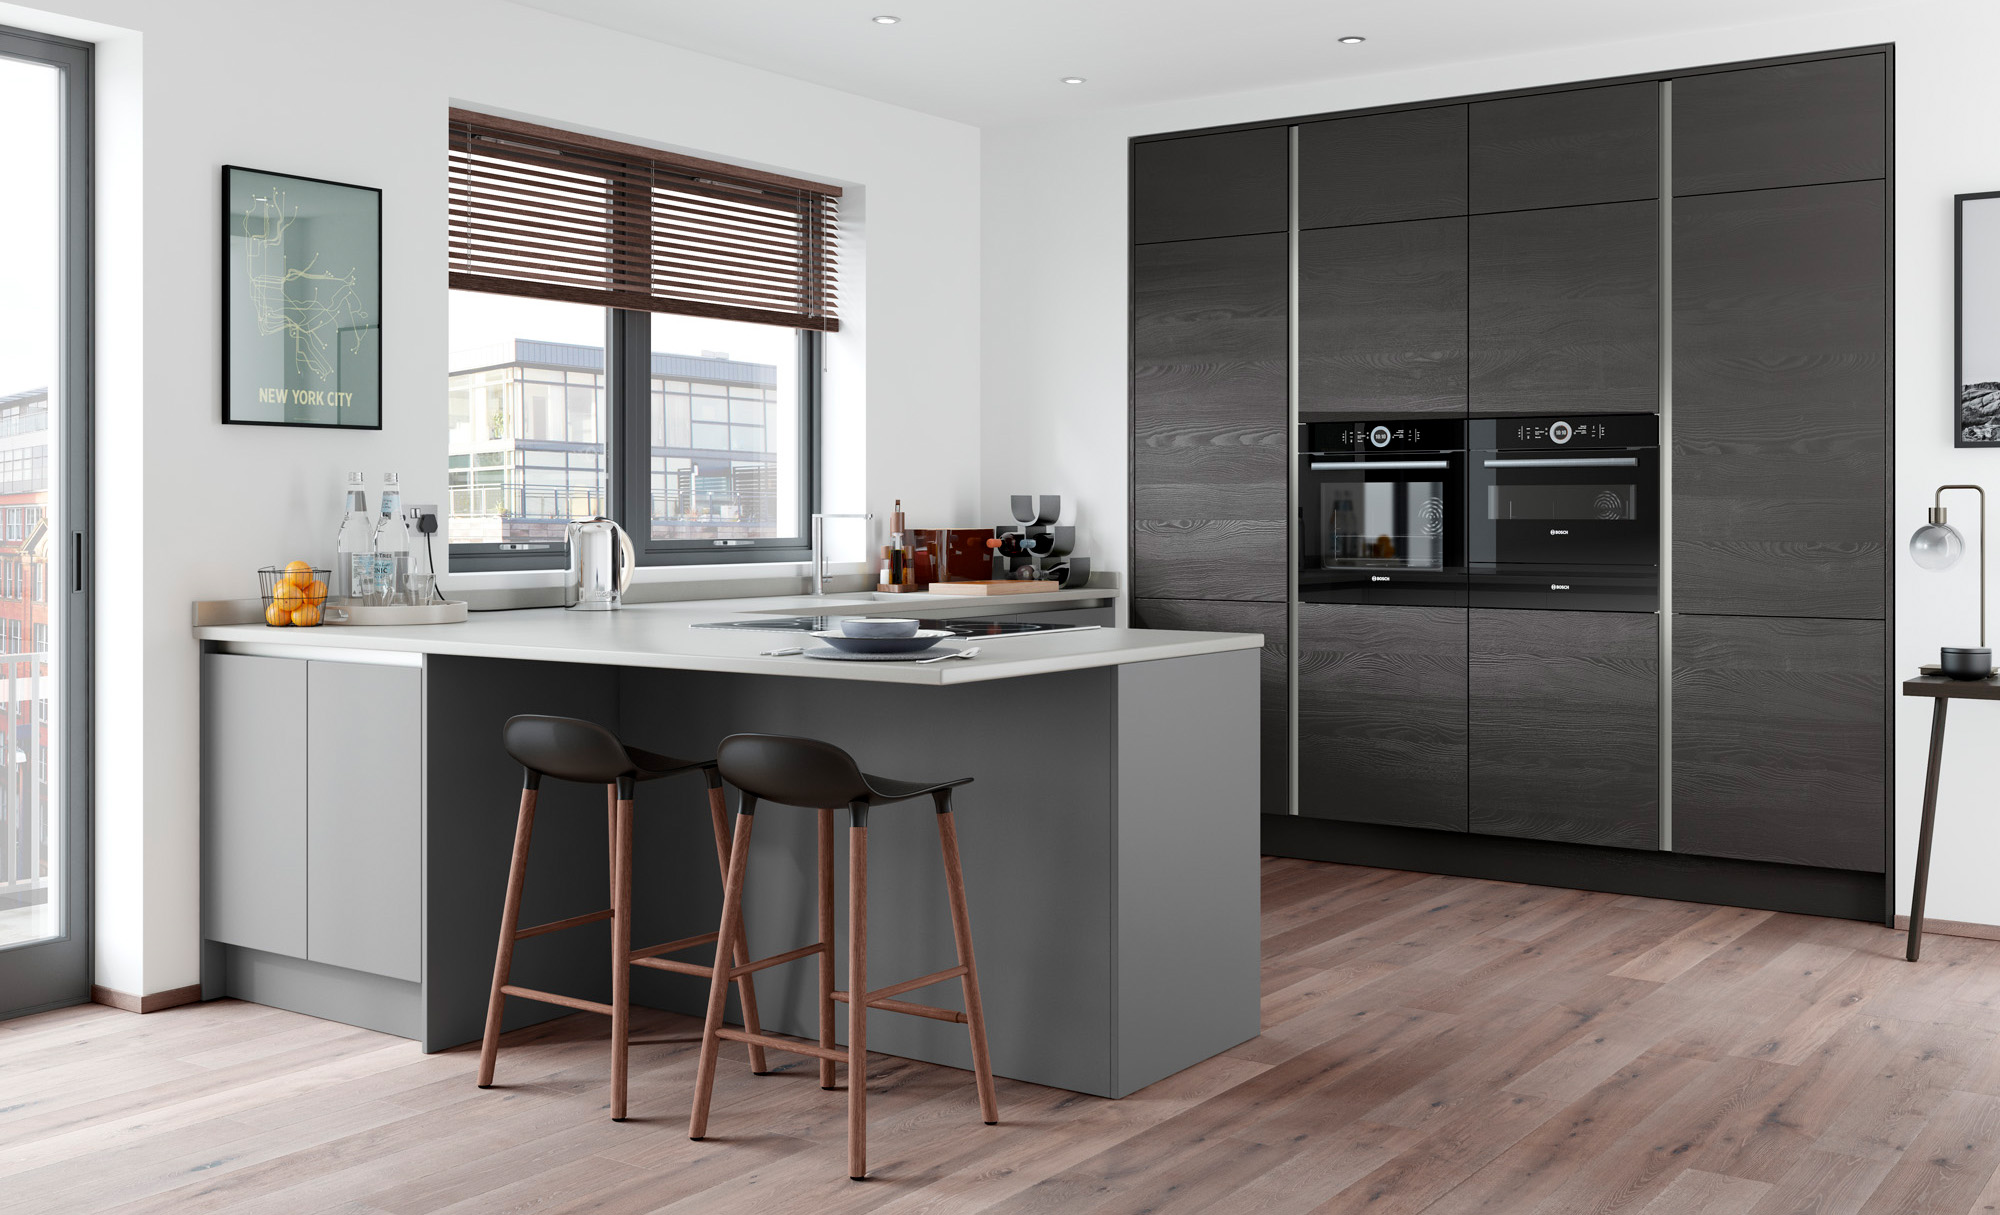 Zola Matte Handleless Kitchen in Dust Grey with Tavola in Hacienda Black